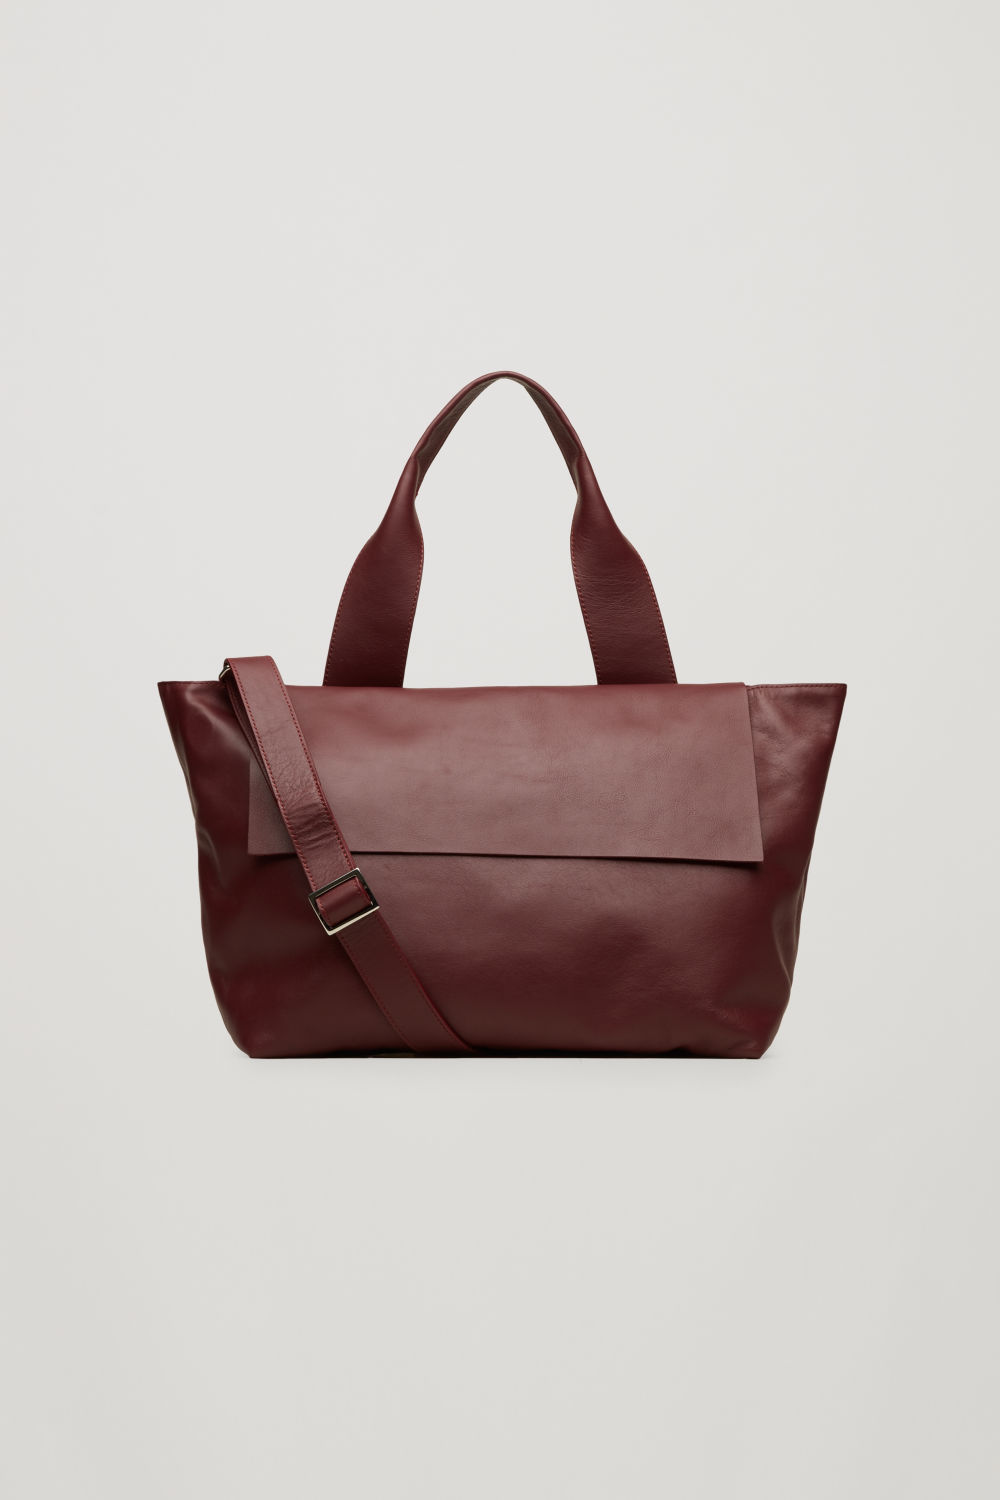 LEATHER TOTE BAG WITH STRAP